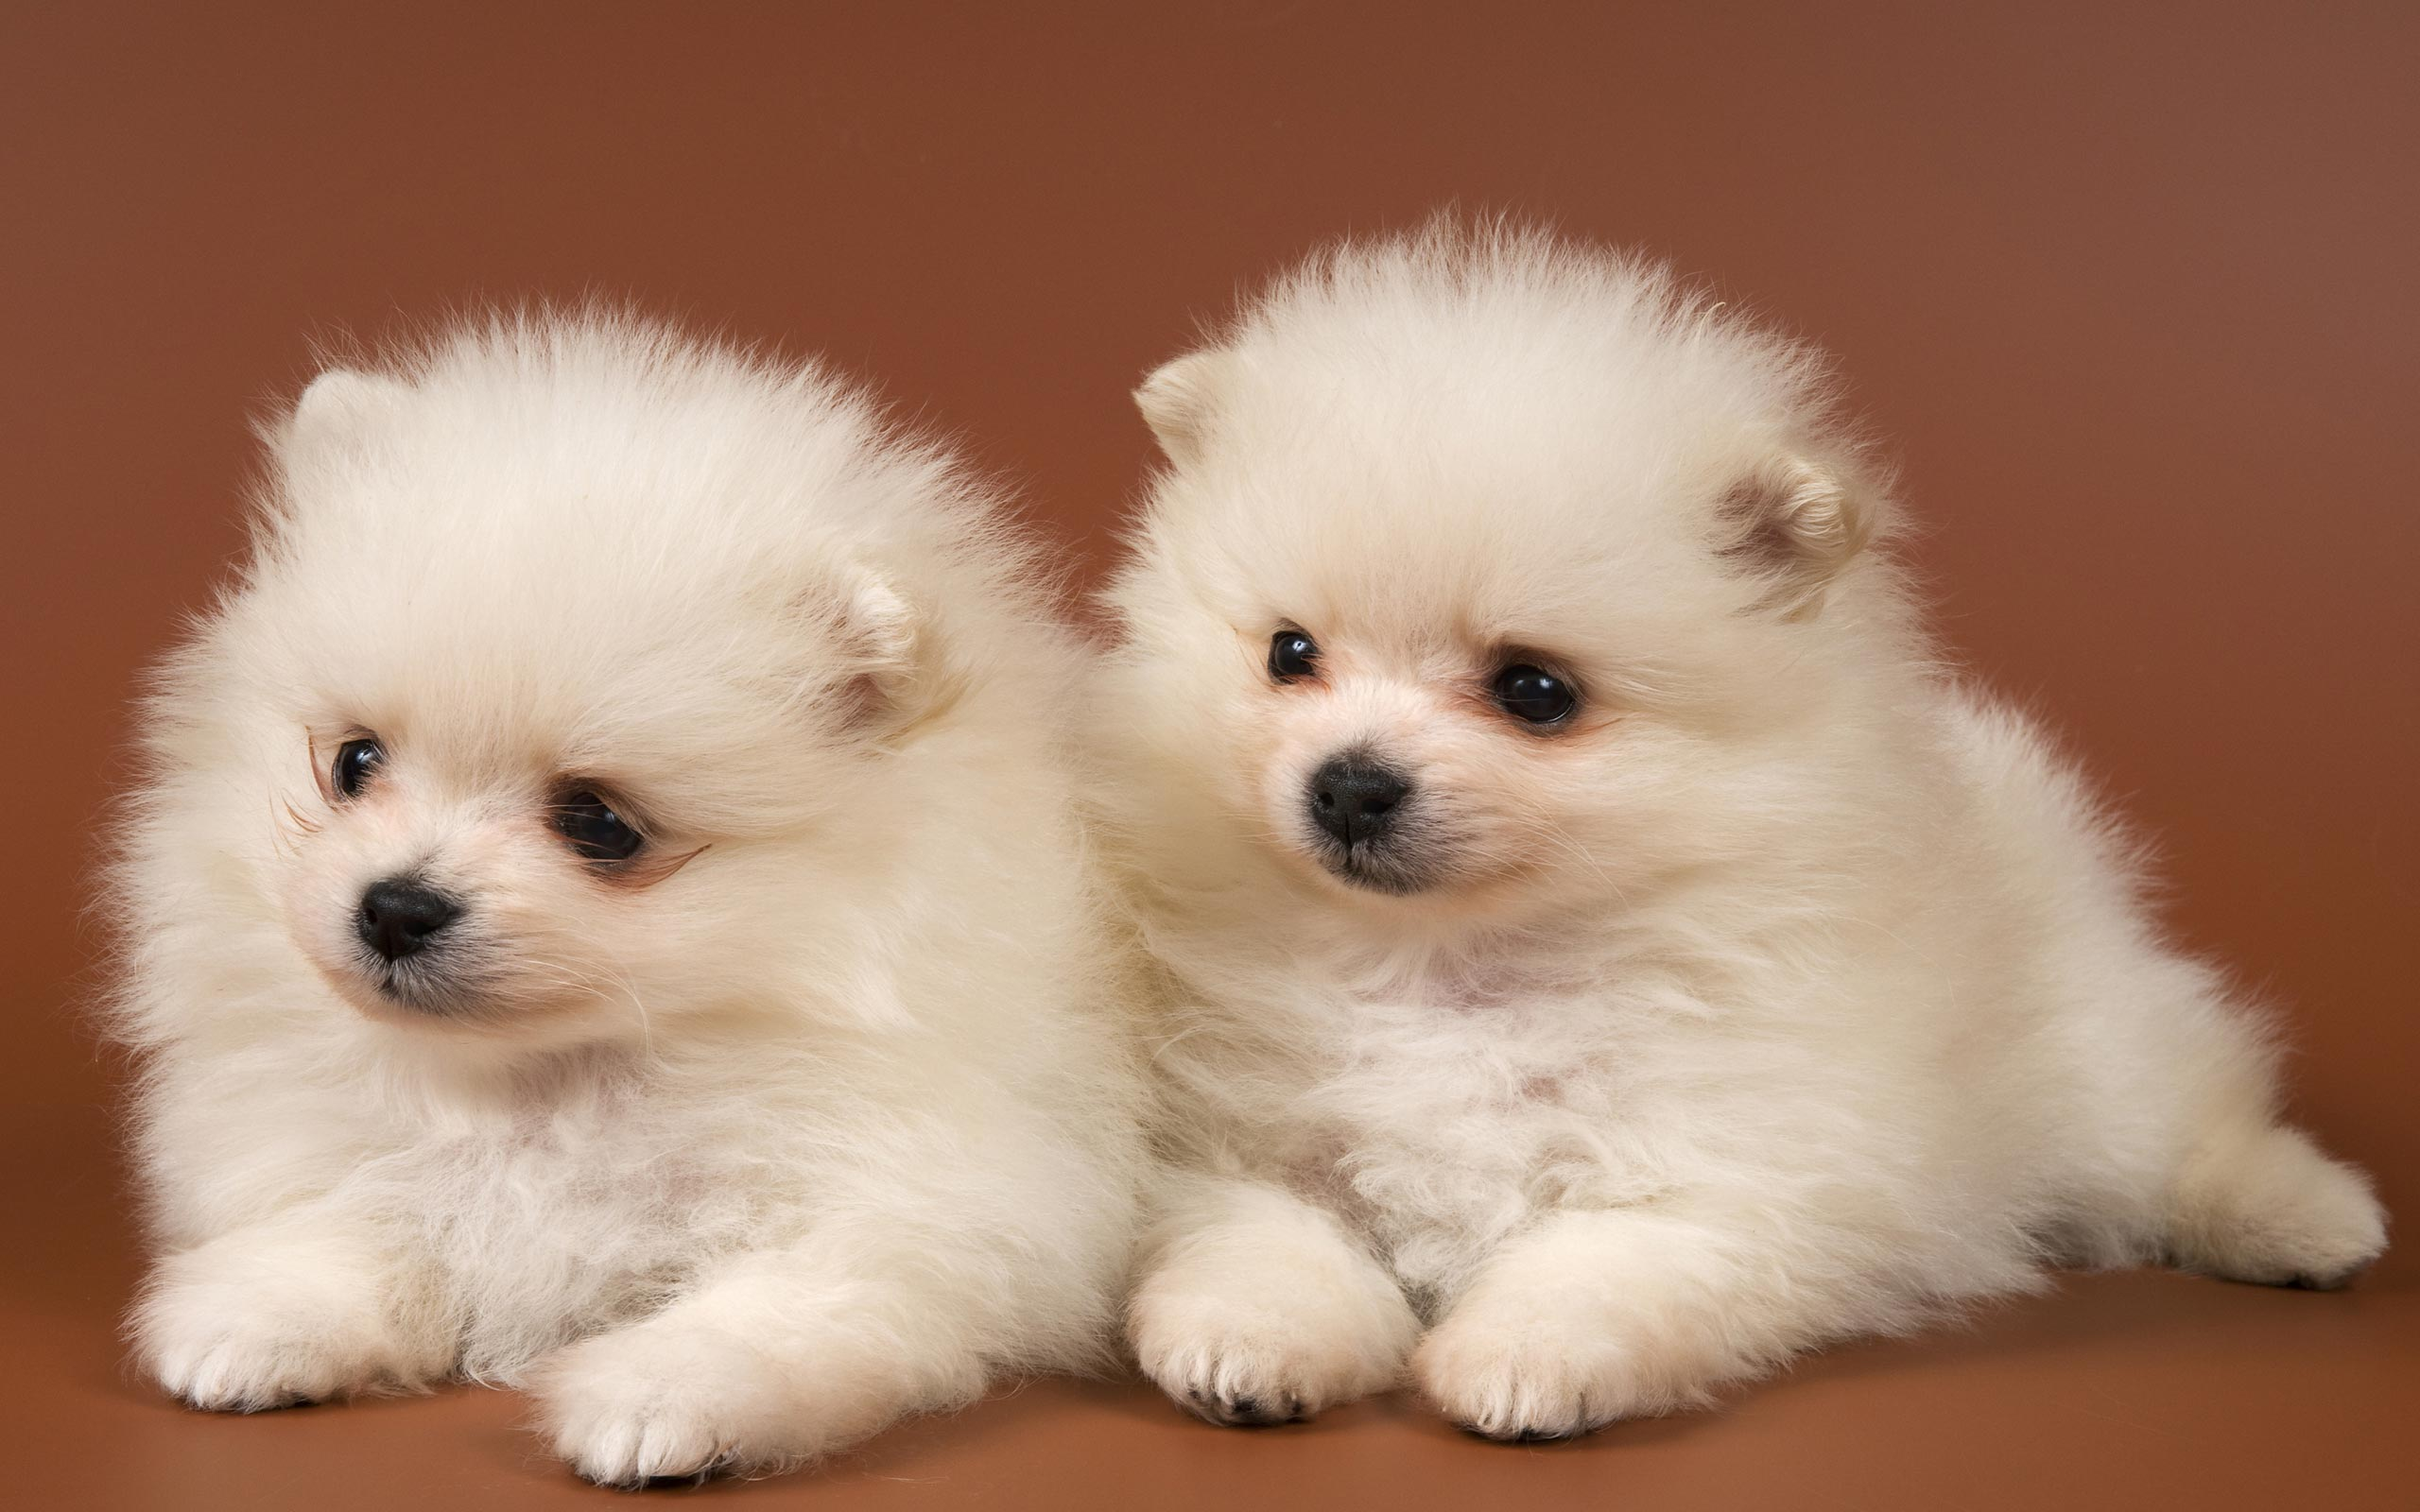 Puppies HD Wallpapers Hd Wallpapers 2560x1600